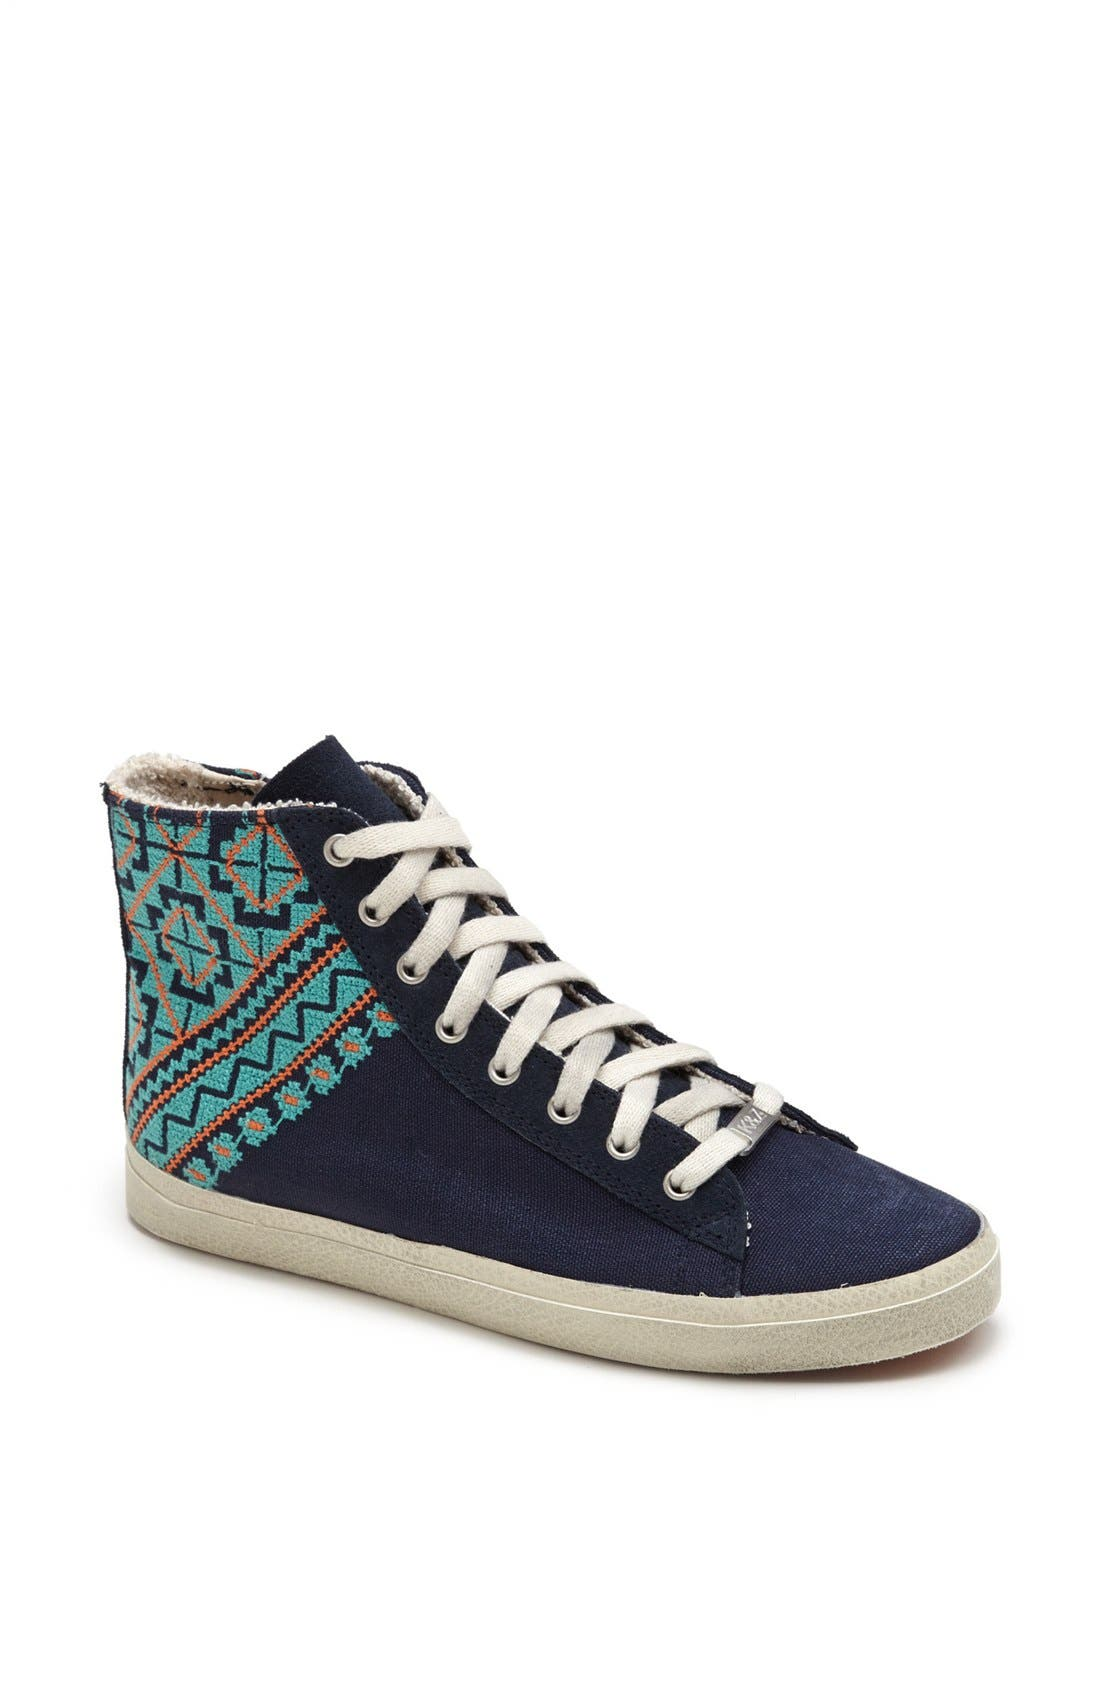 Alternate Image 1 Selected - Kim & Zozi 'Woven' High Top Sneaker